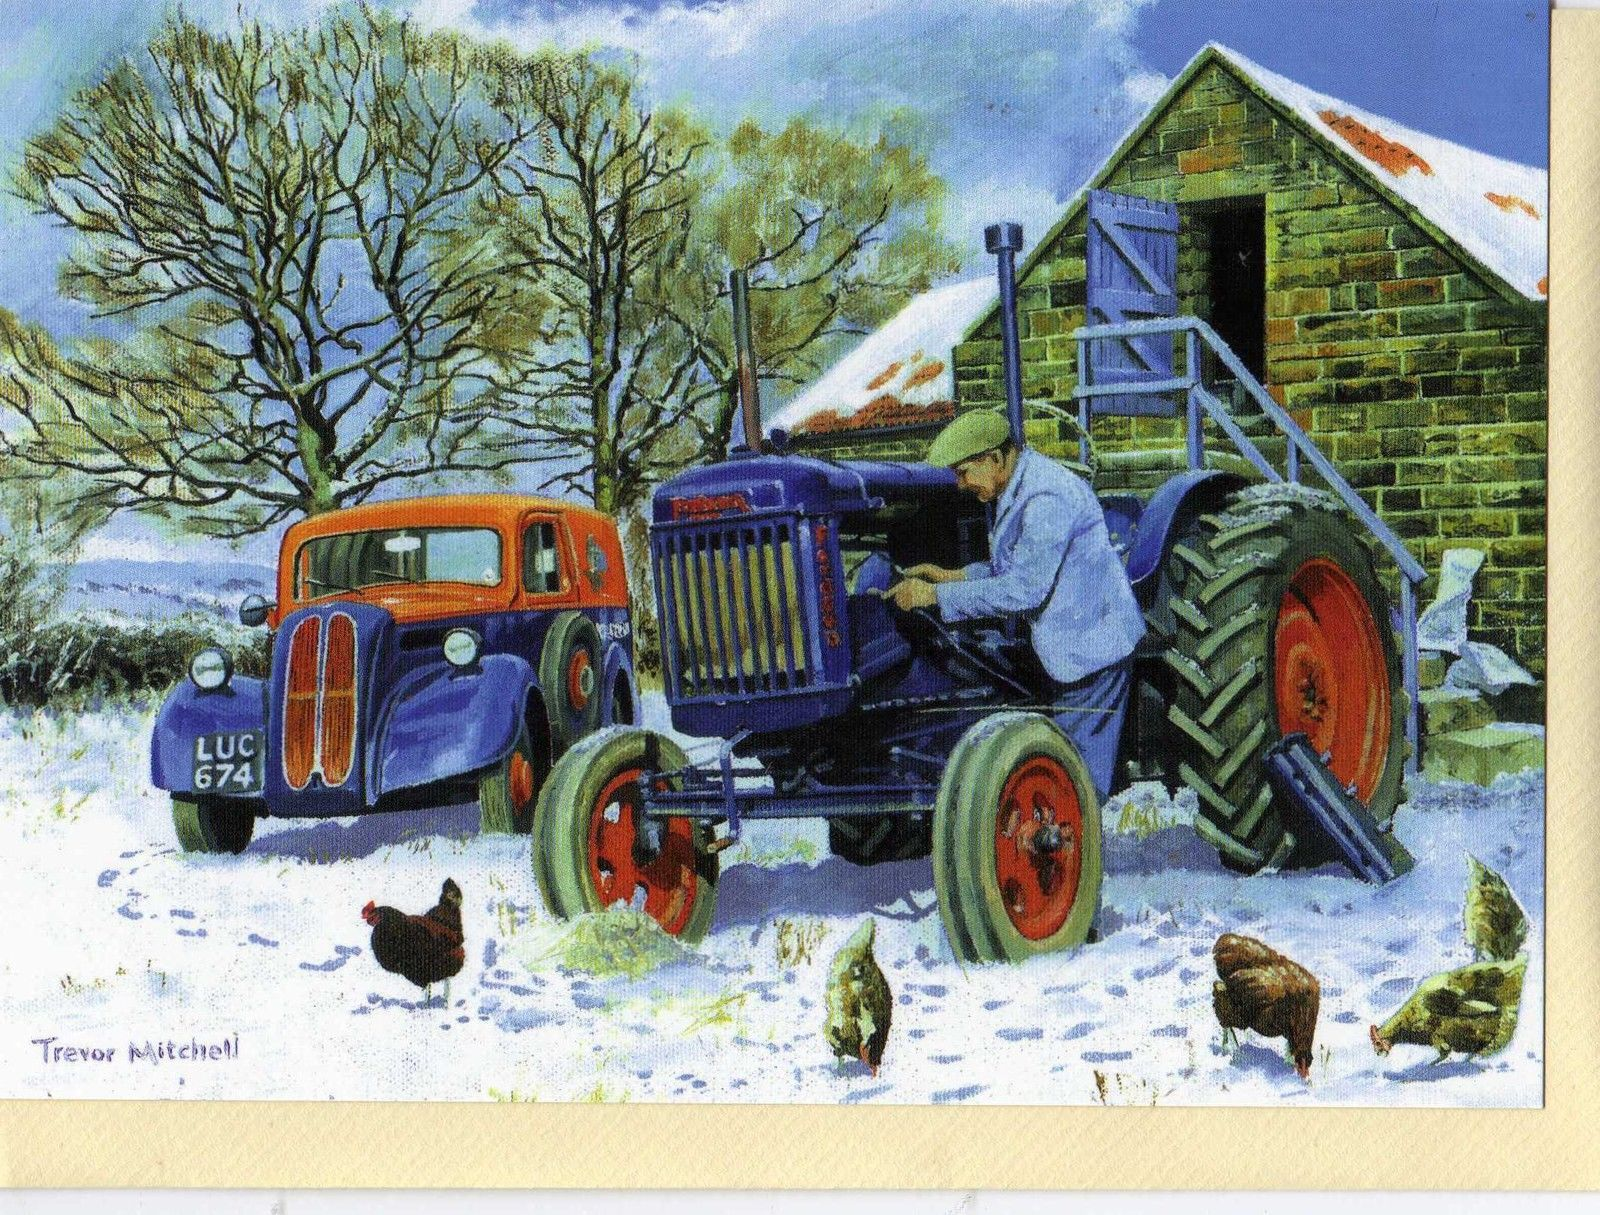 FORDSON TRACTOR & FORD VANCHRISTMAS PRINT CARDTREVOR